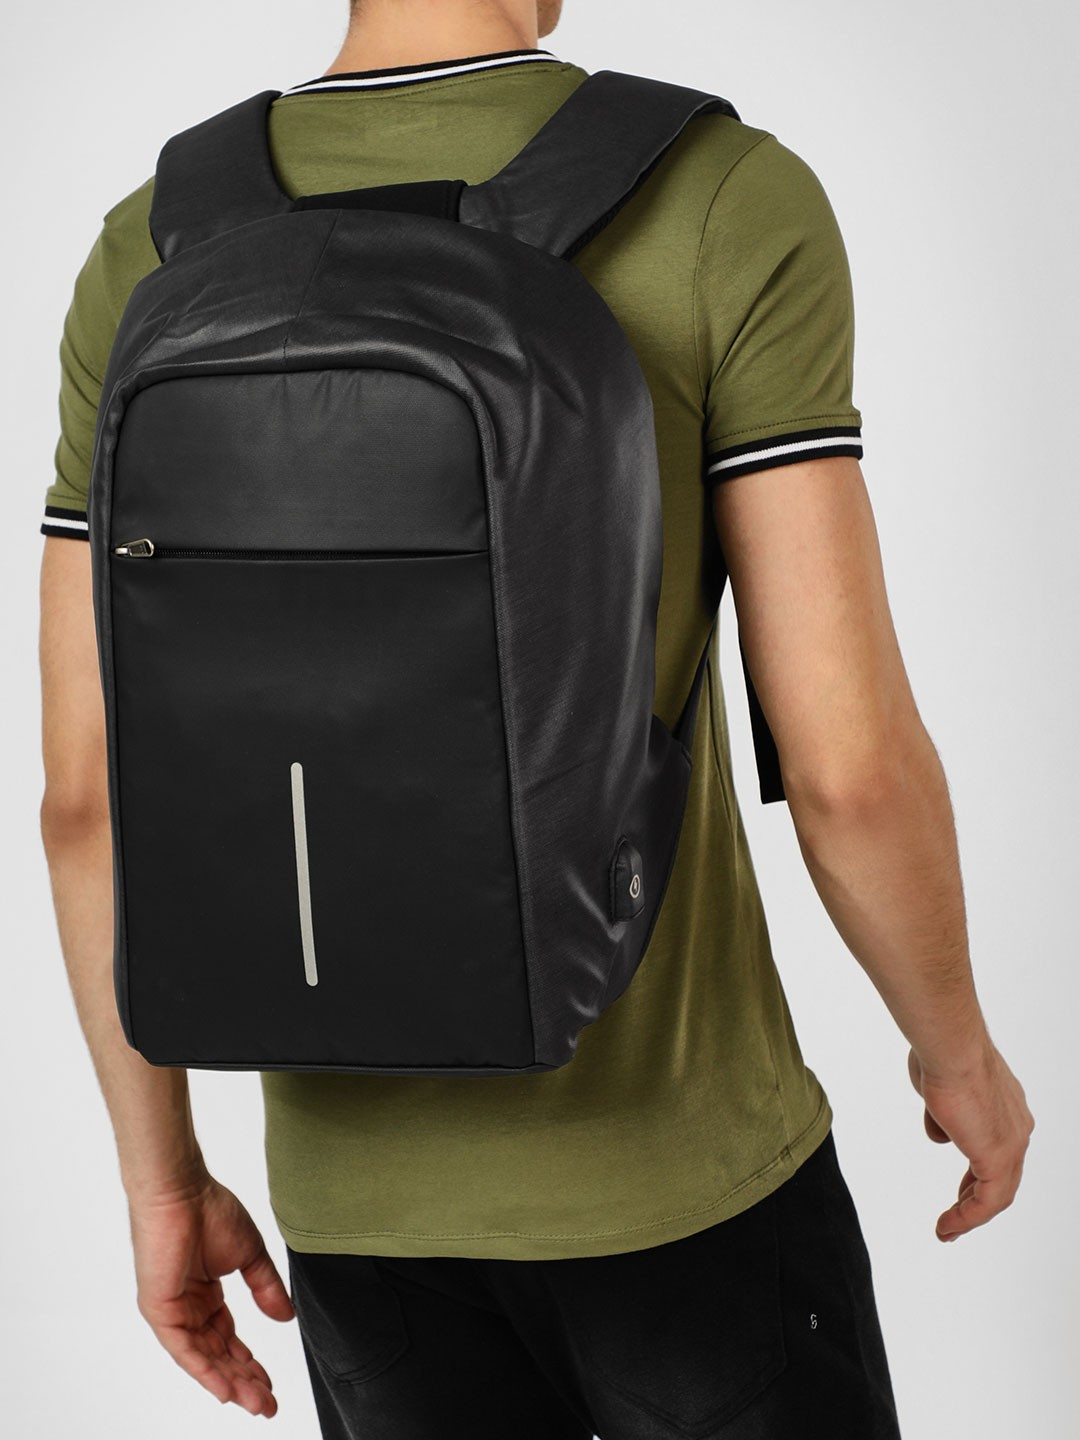 KAKA Black USB Anti-Theft Backpack 1